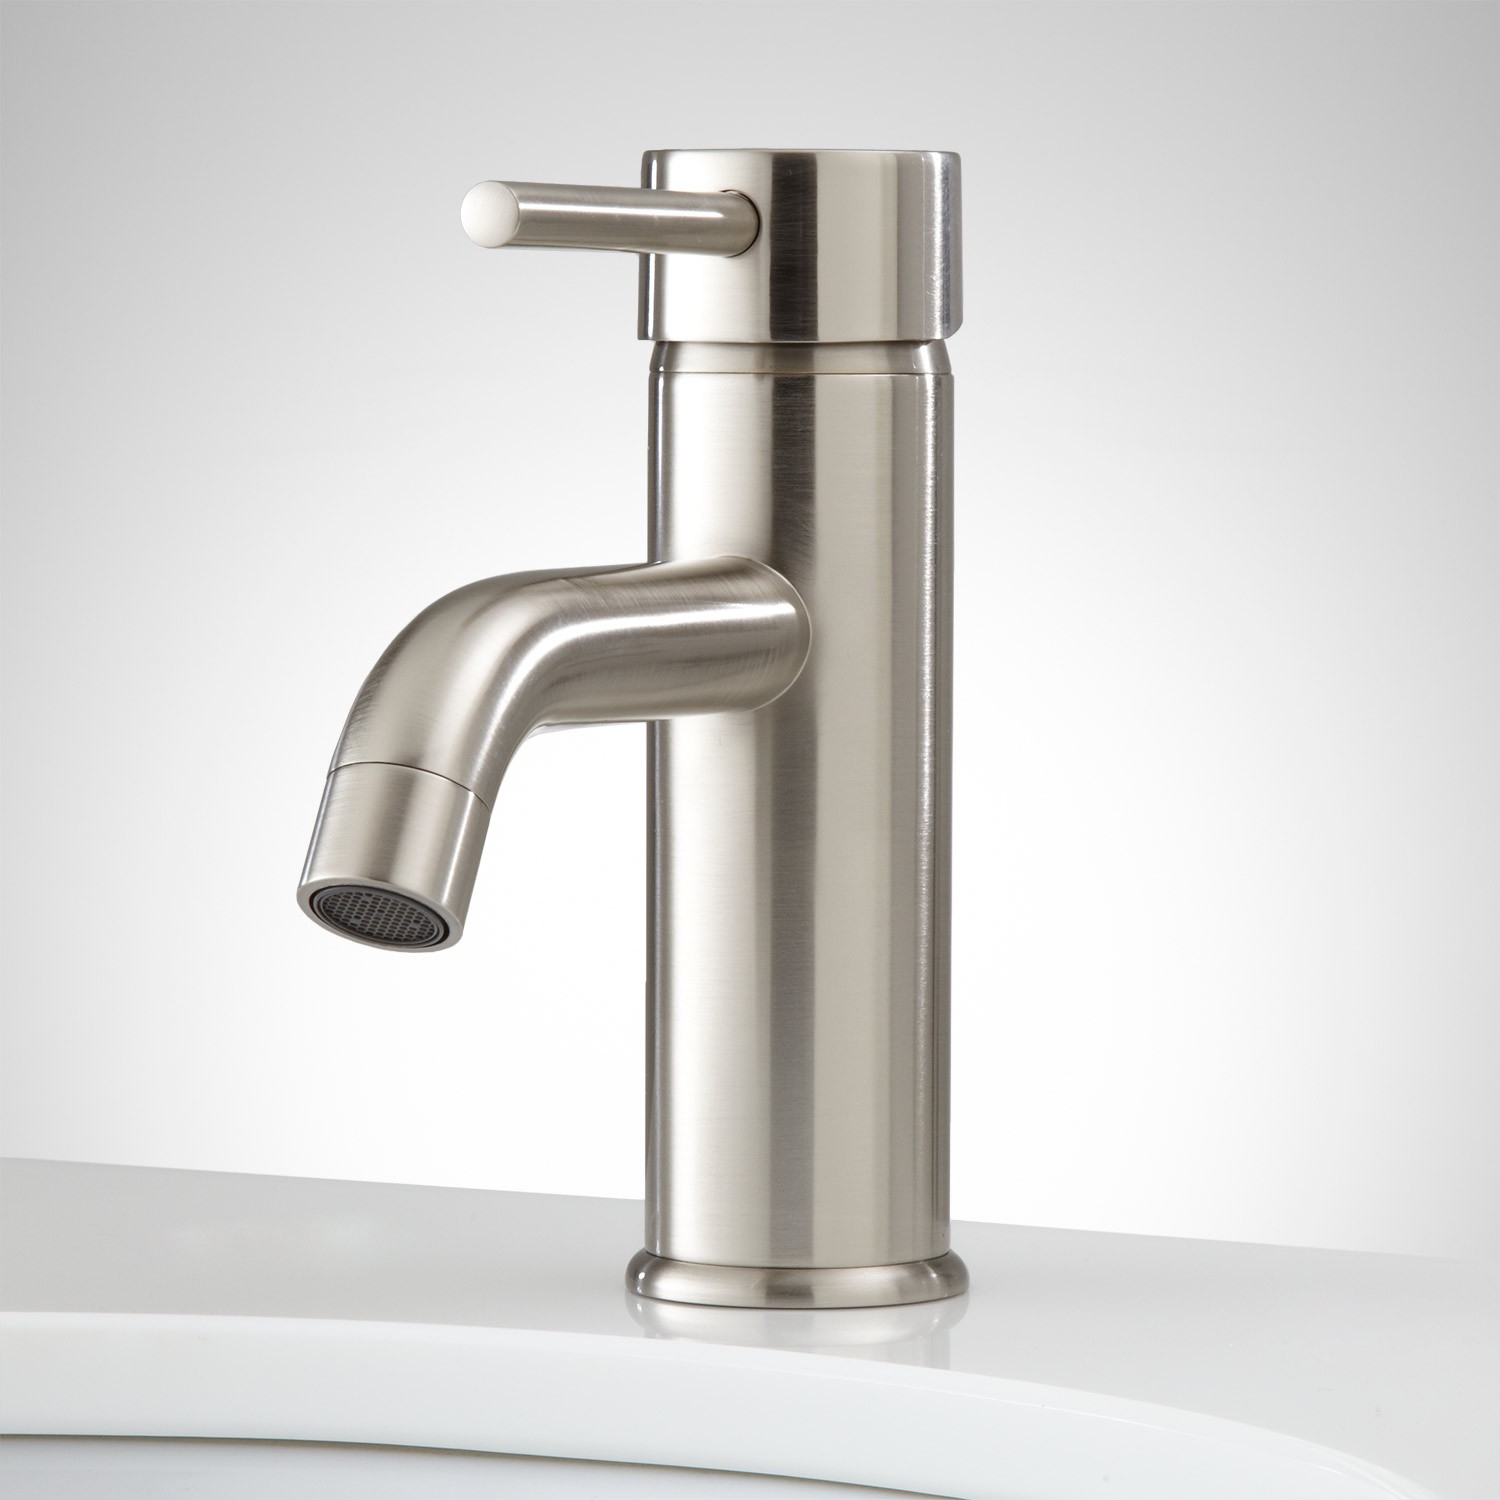 hewitt single hole bathroom faucet with pop up drain bathroom for size 1500 x 1500